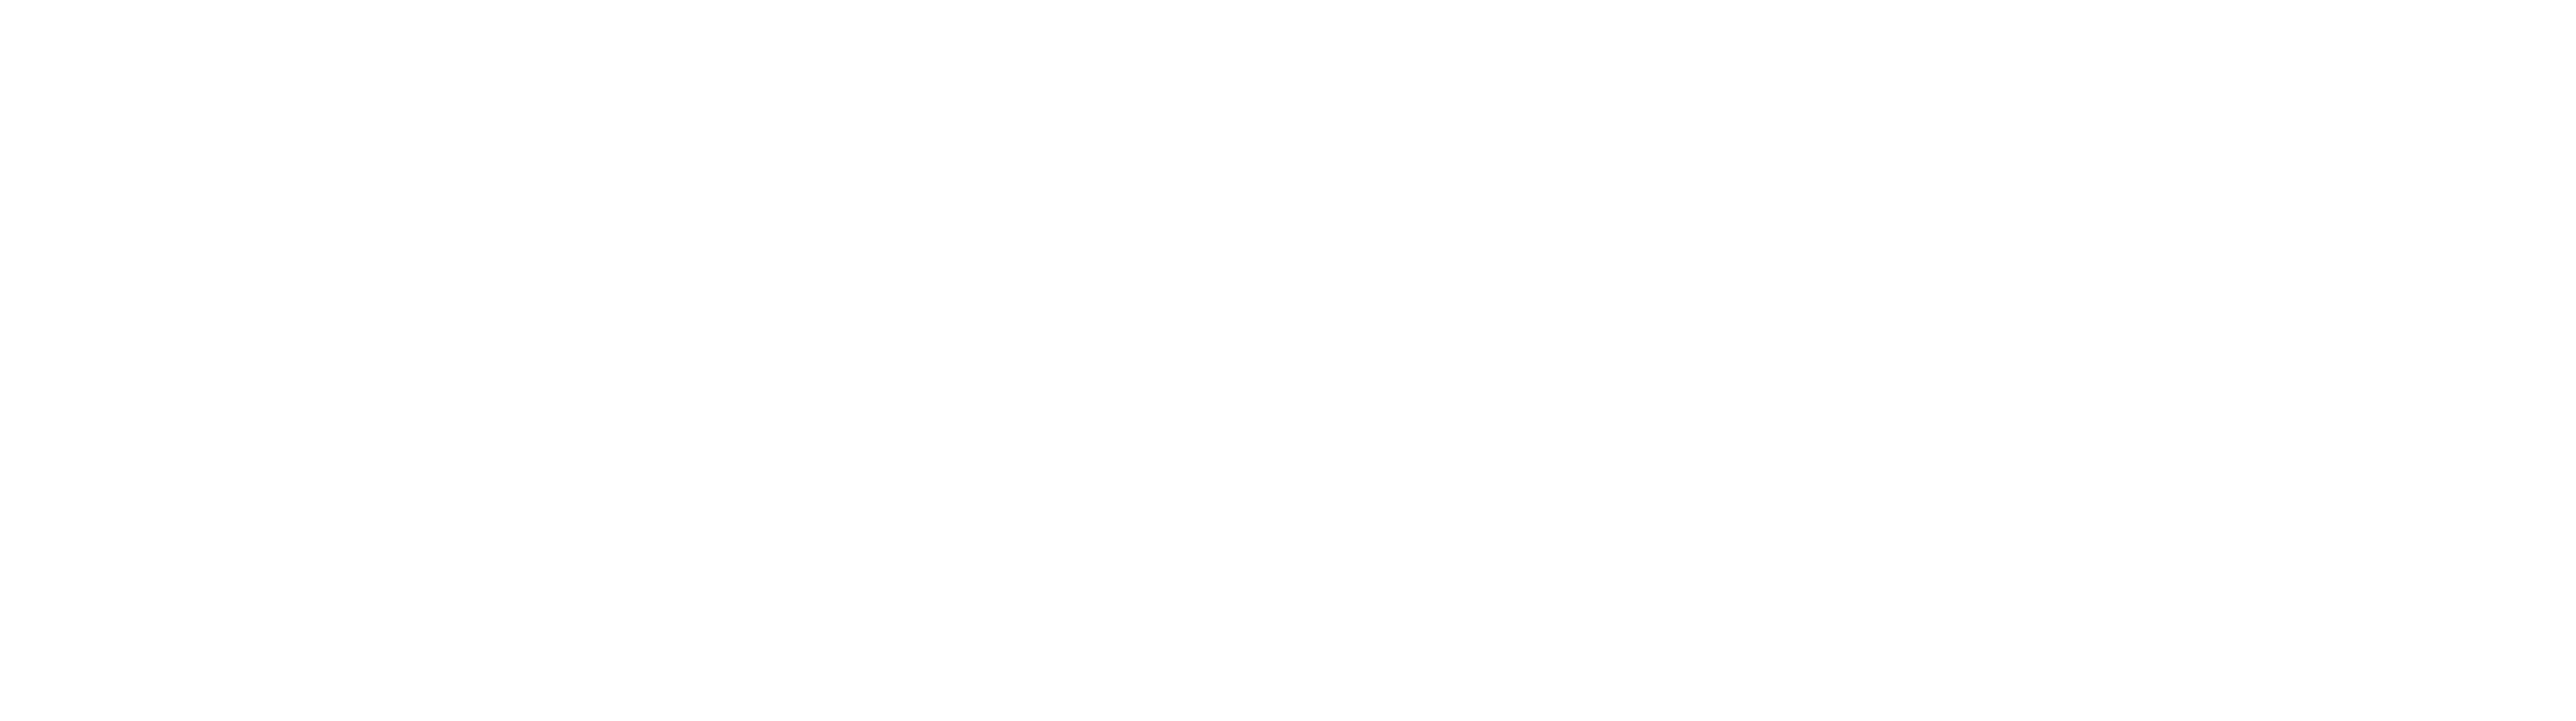 Rosery Florist - Flower Delivery in Greater Sudbury, ON